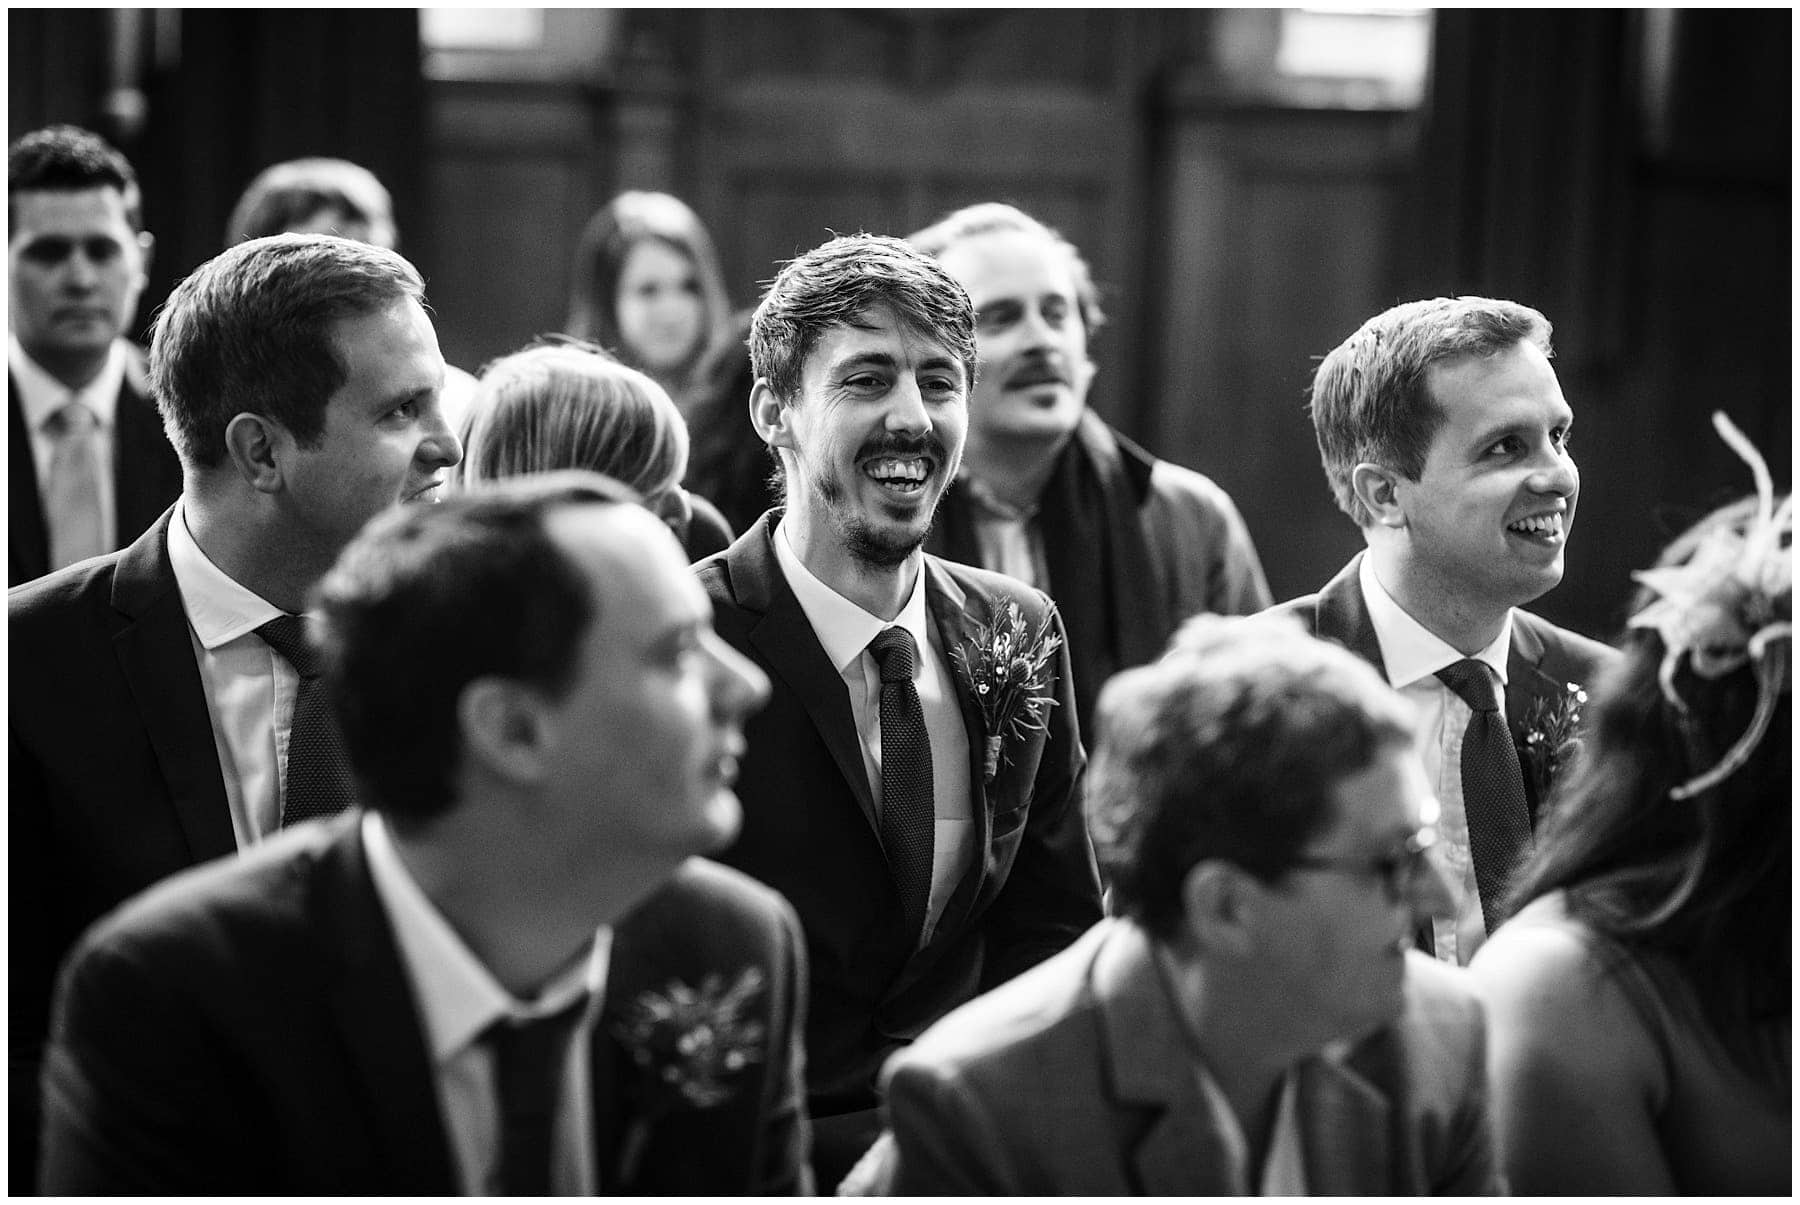 Oxfordshire wedding Photographer J S Coates Wedding Photography. Oxford Town Hall & The Perch Pub 29